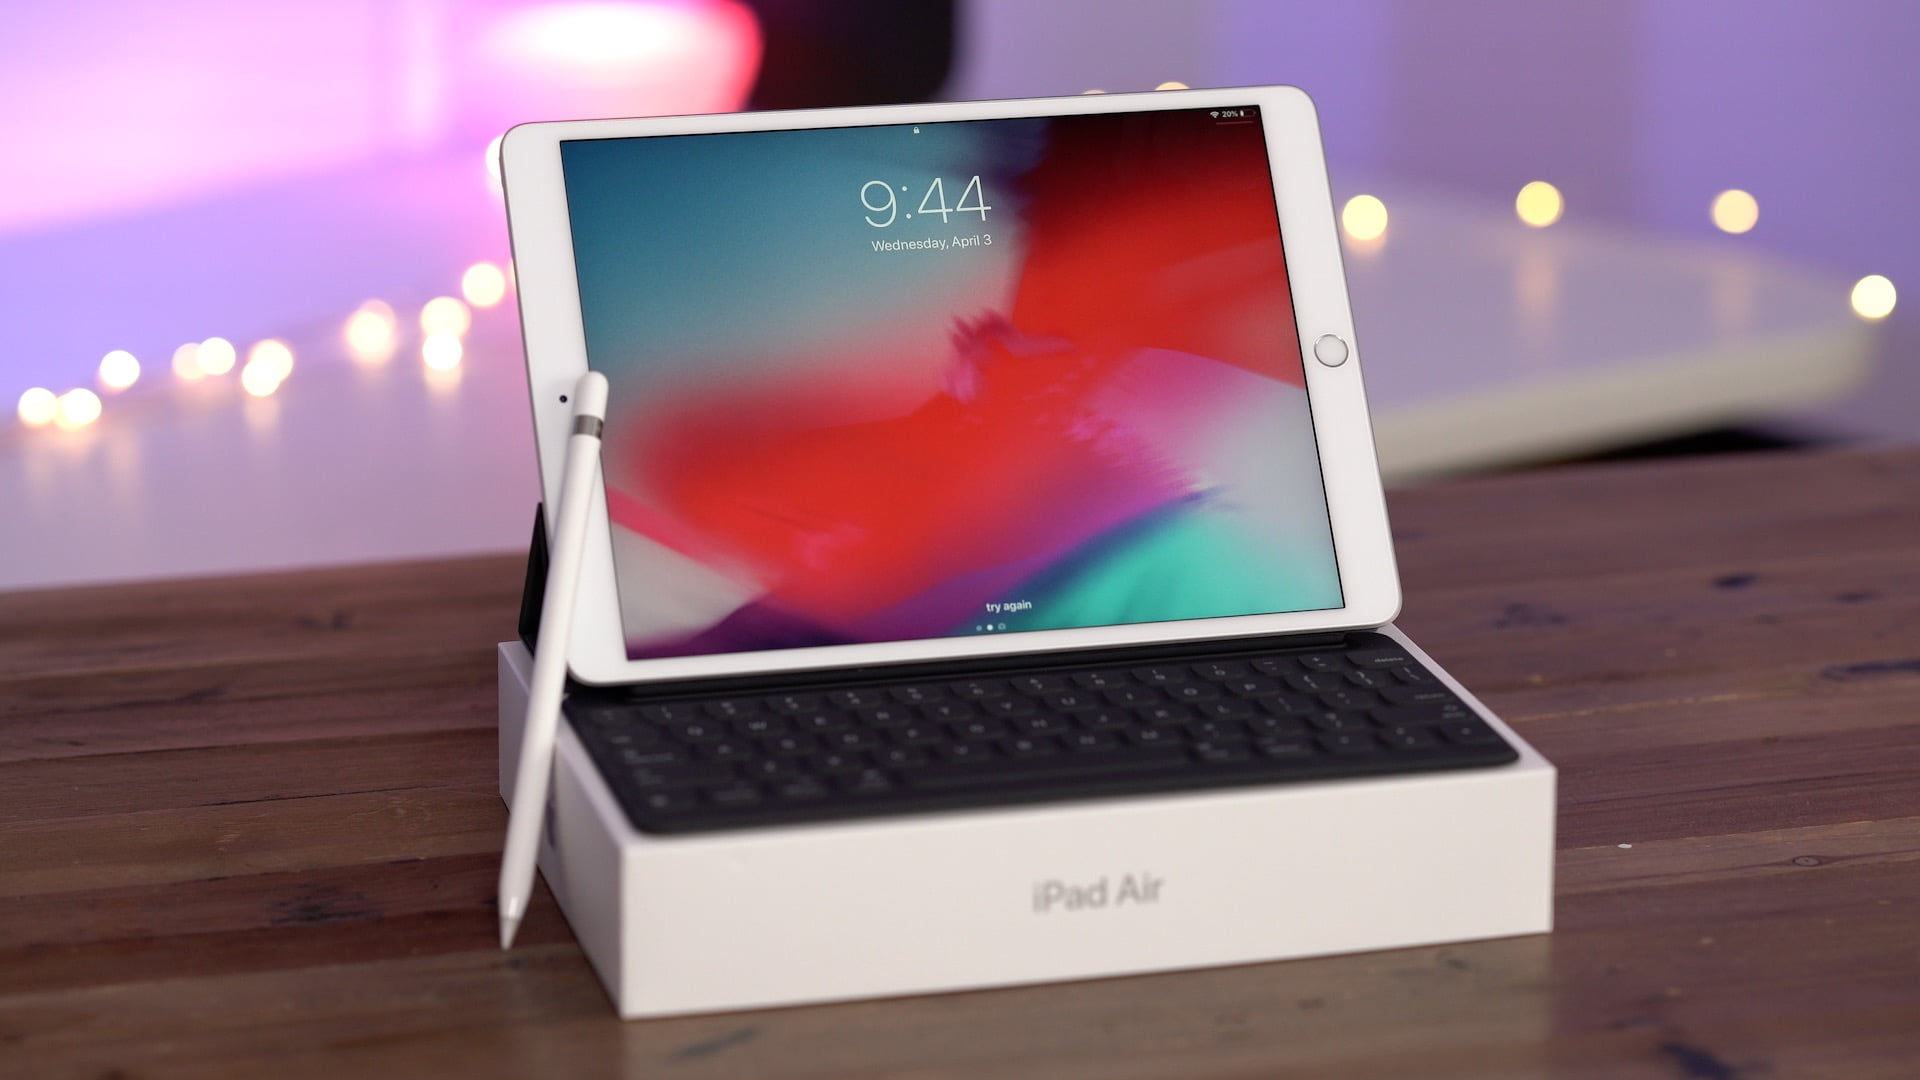 The new iPads will have 2 gb of RAM and a Retina HD screen